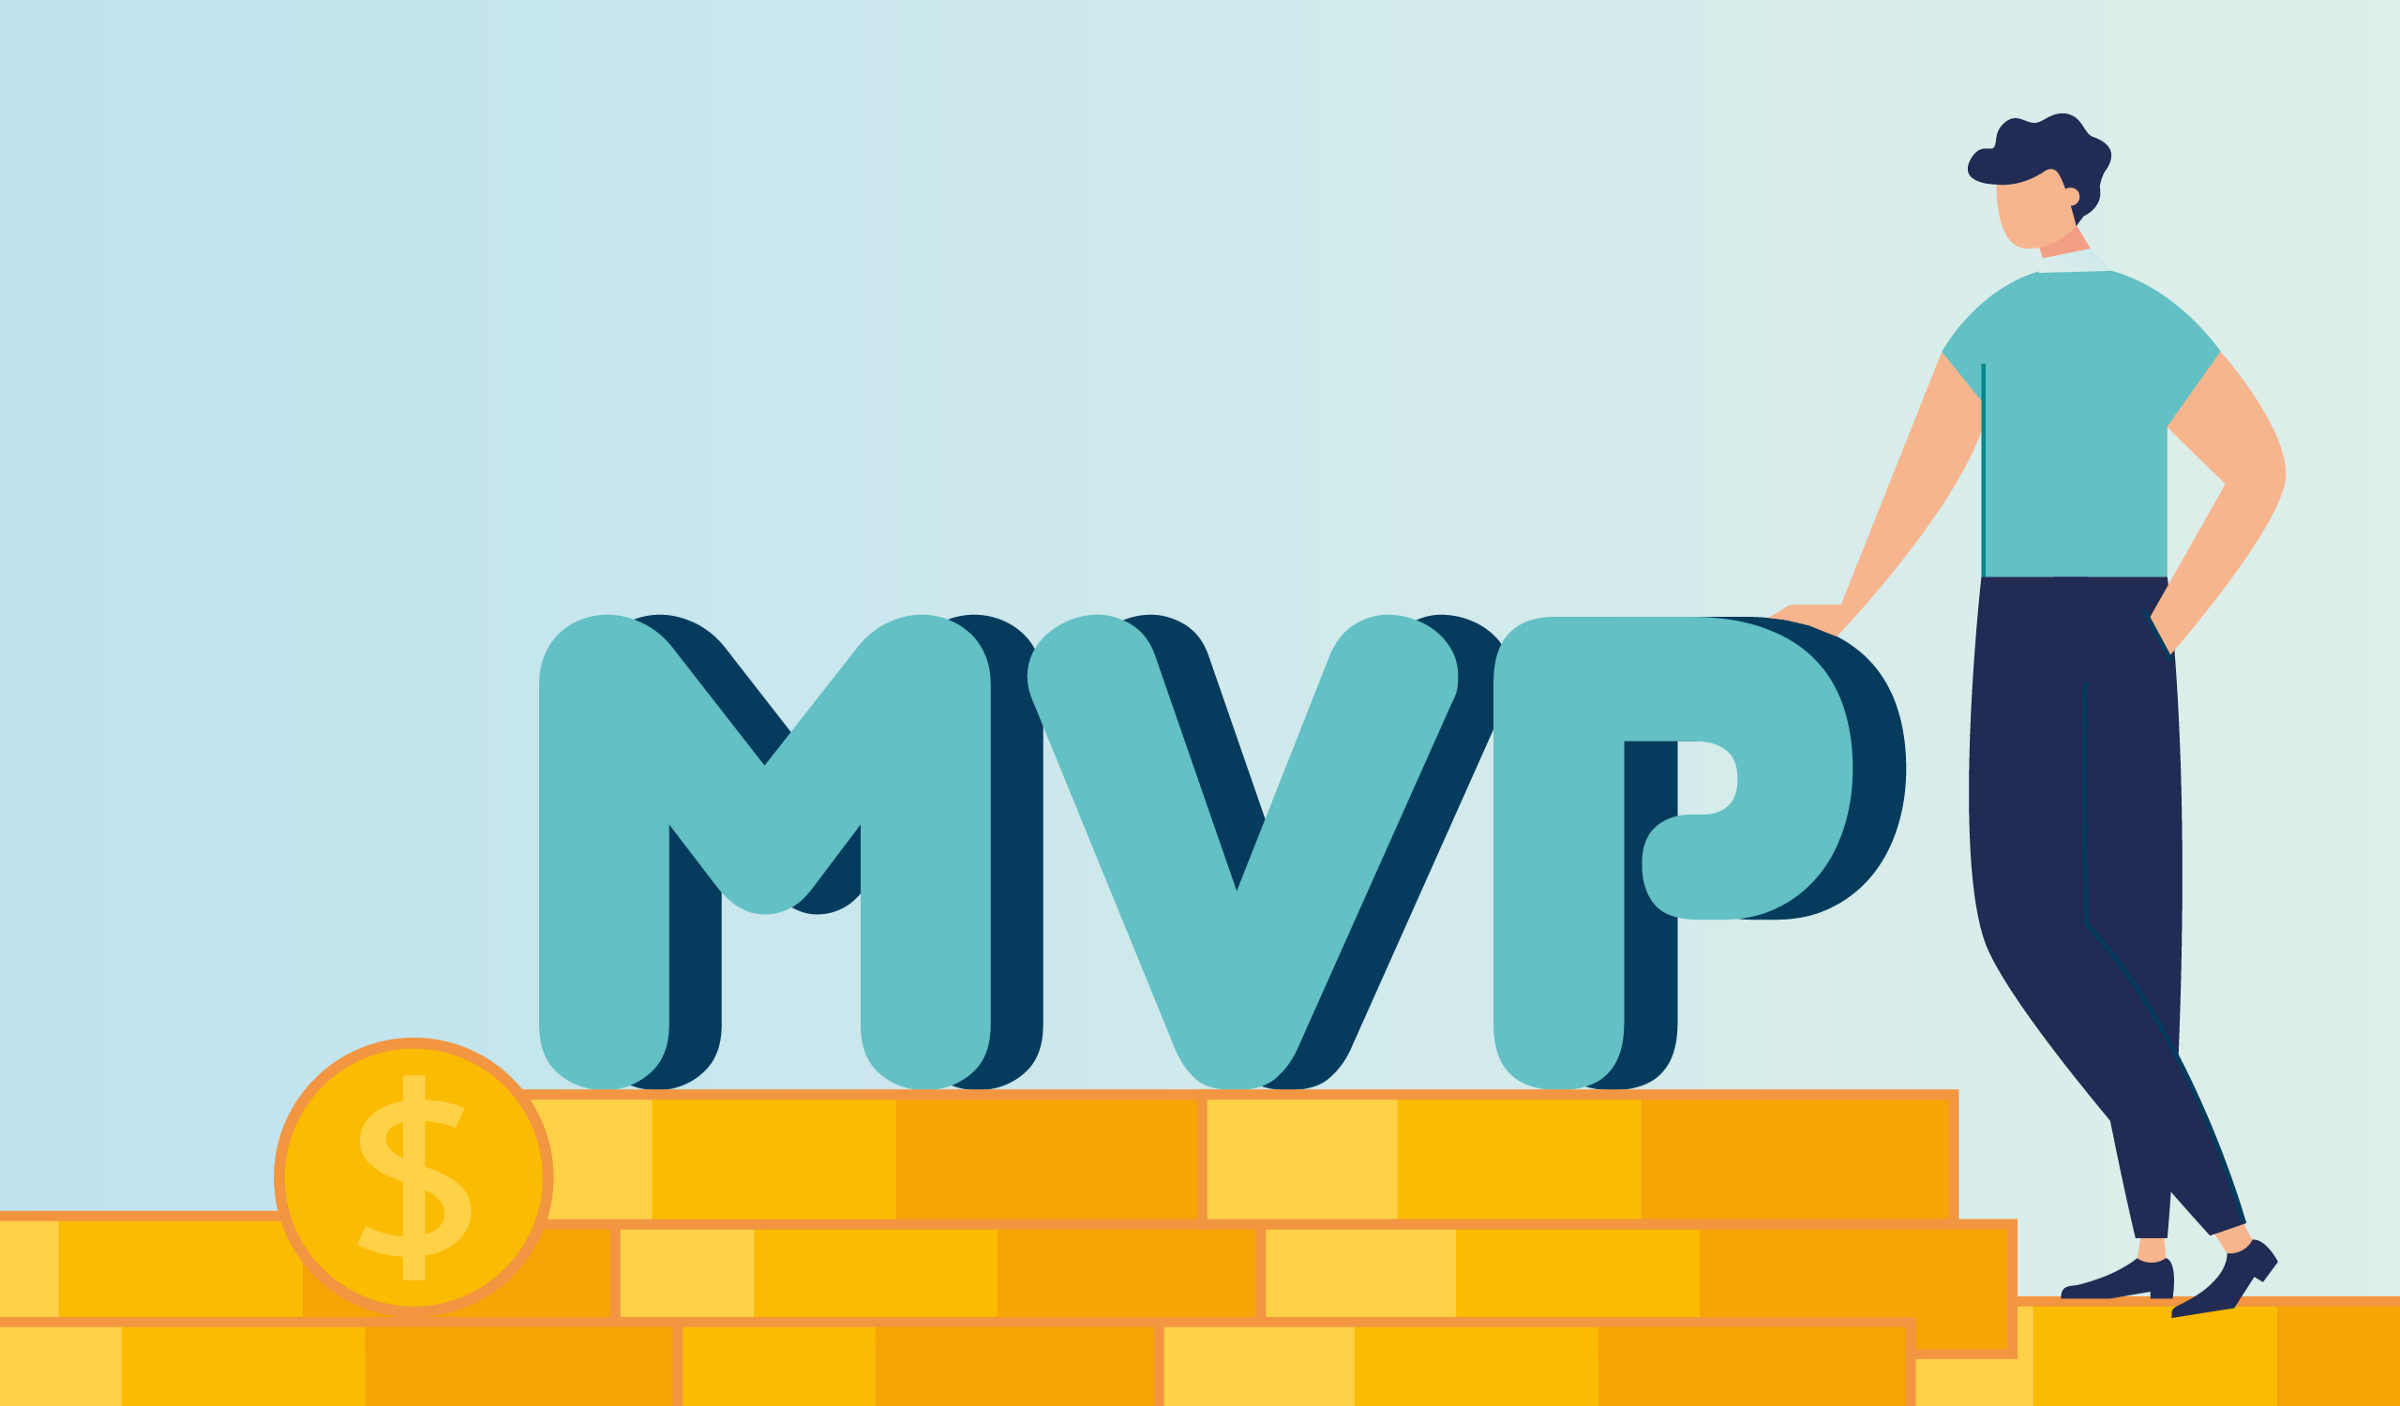 /how-to-create-mvp-guide-for-non-technical-specialists-53b3cb1a07d0 feature image